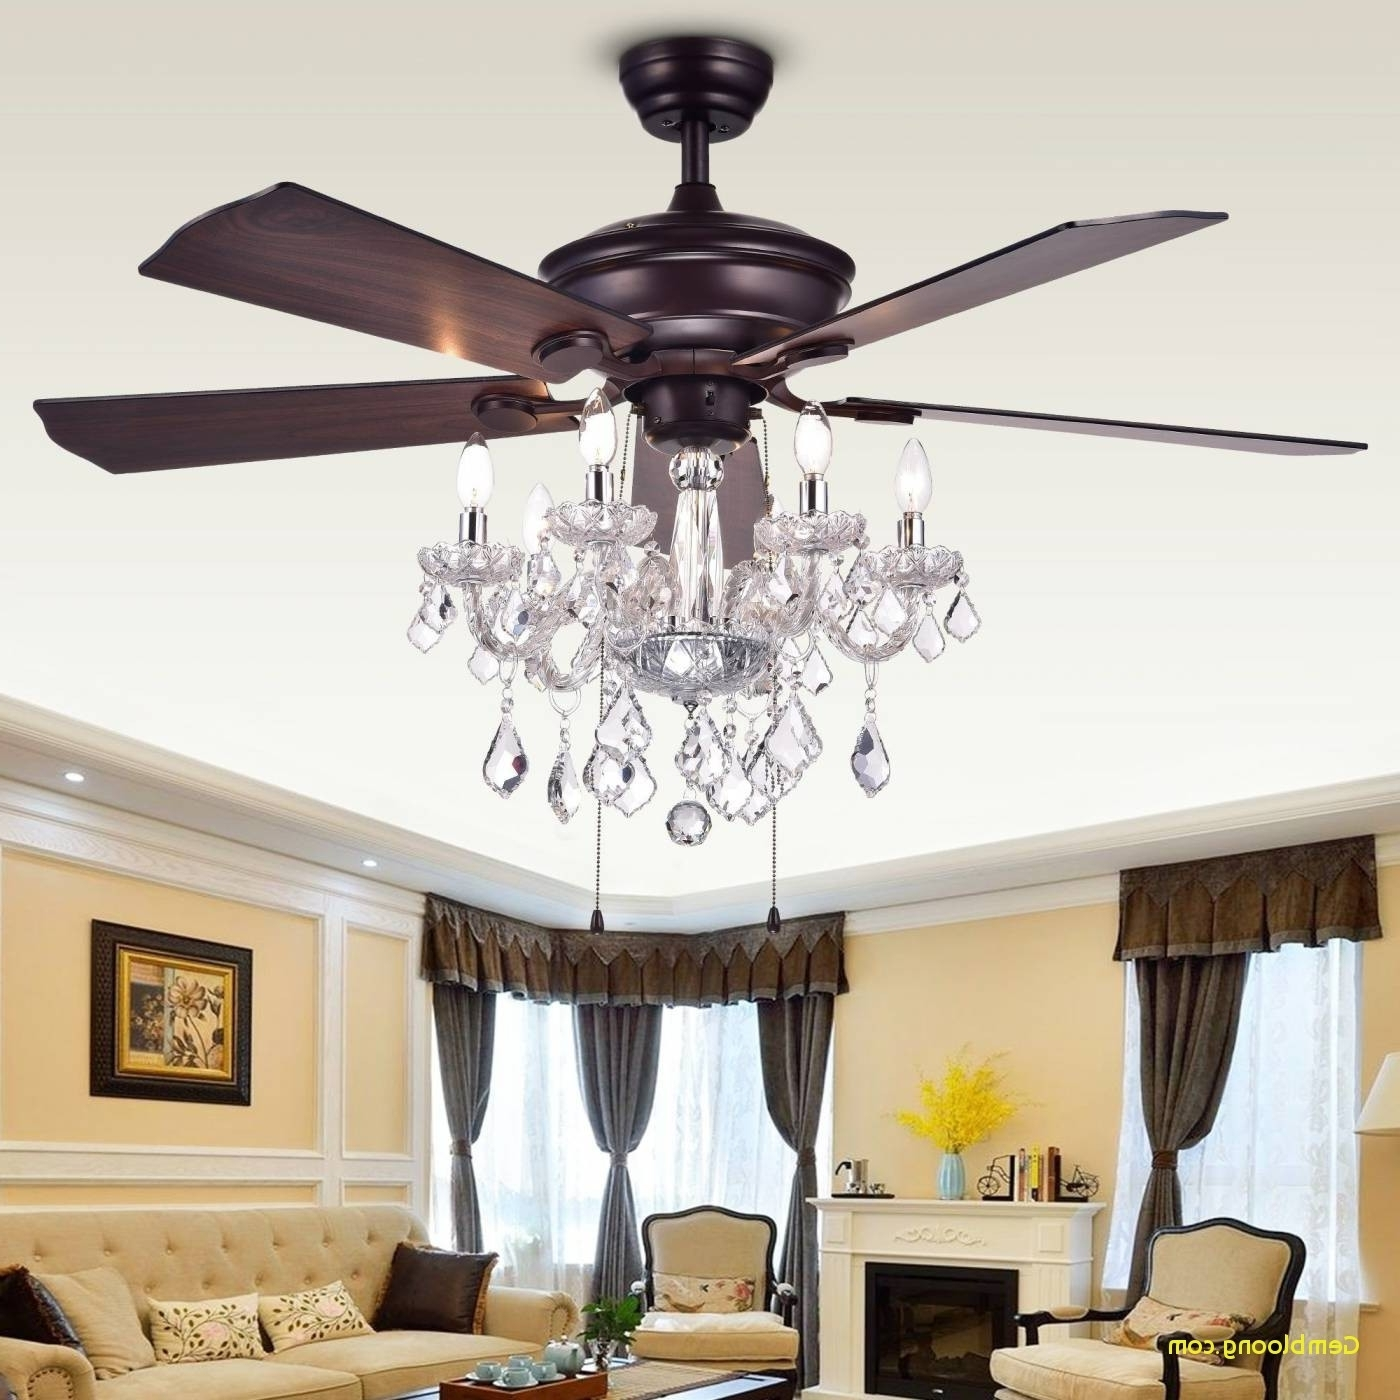 Casa Vieja Ceiling Fans Elegant 40 New Chandelier Ceiling Fan Intended For 2019 Casa Vieja Outdoor Ceiling Fans (View 7 of 20)